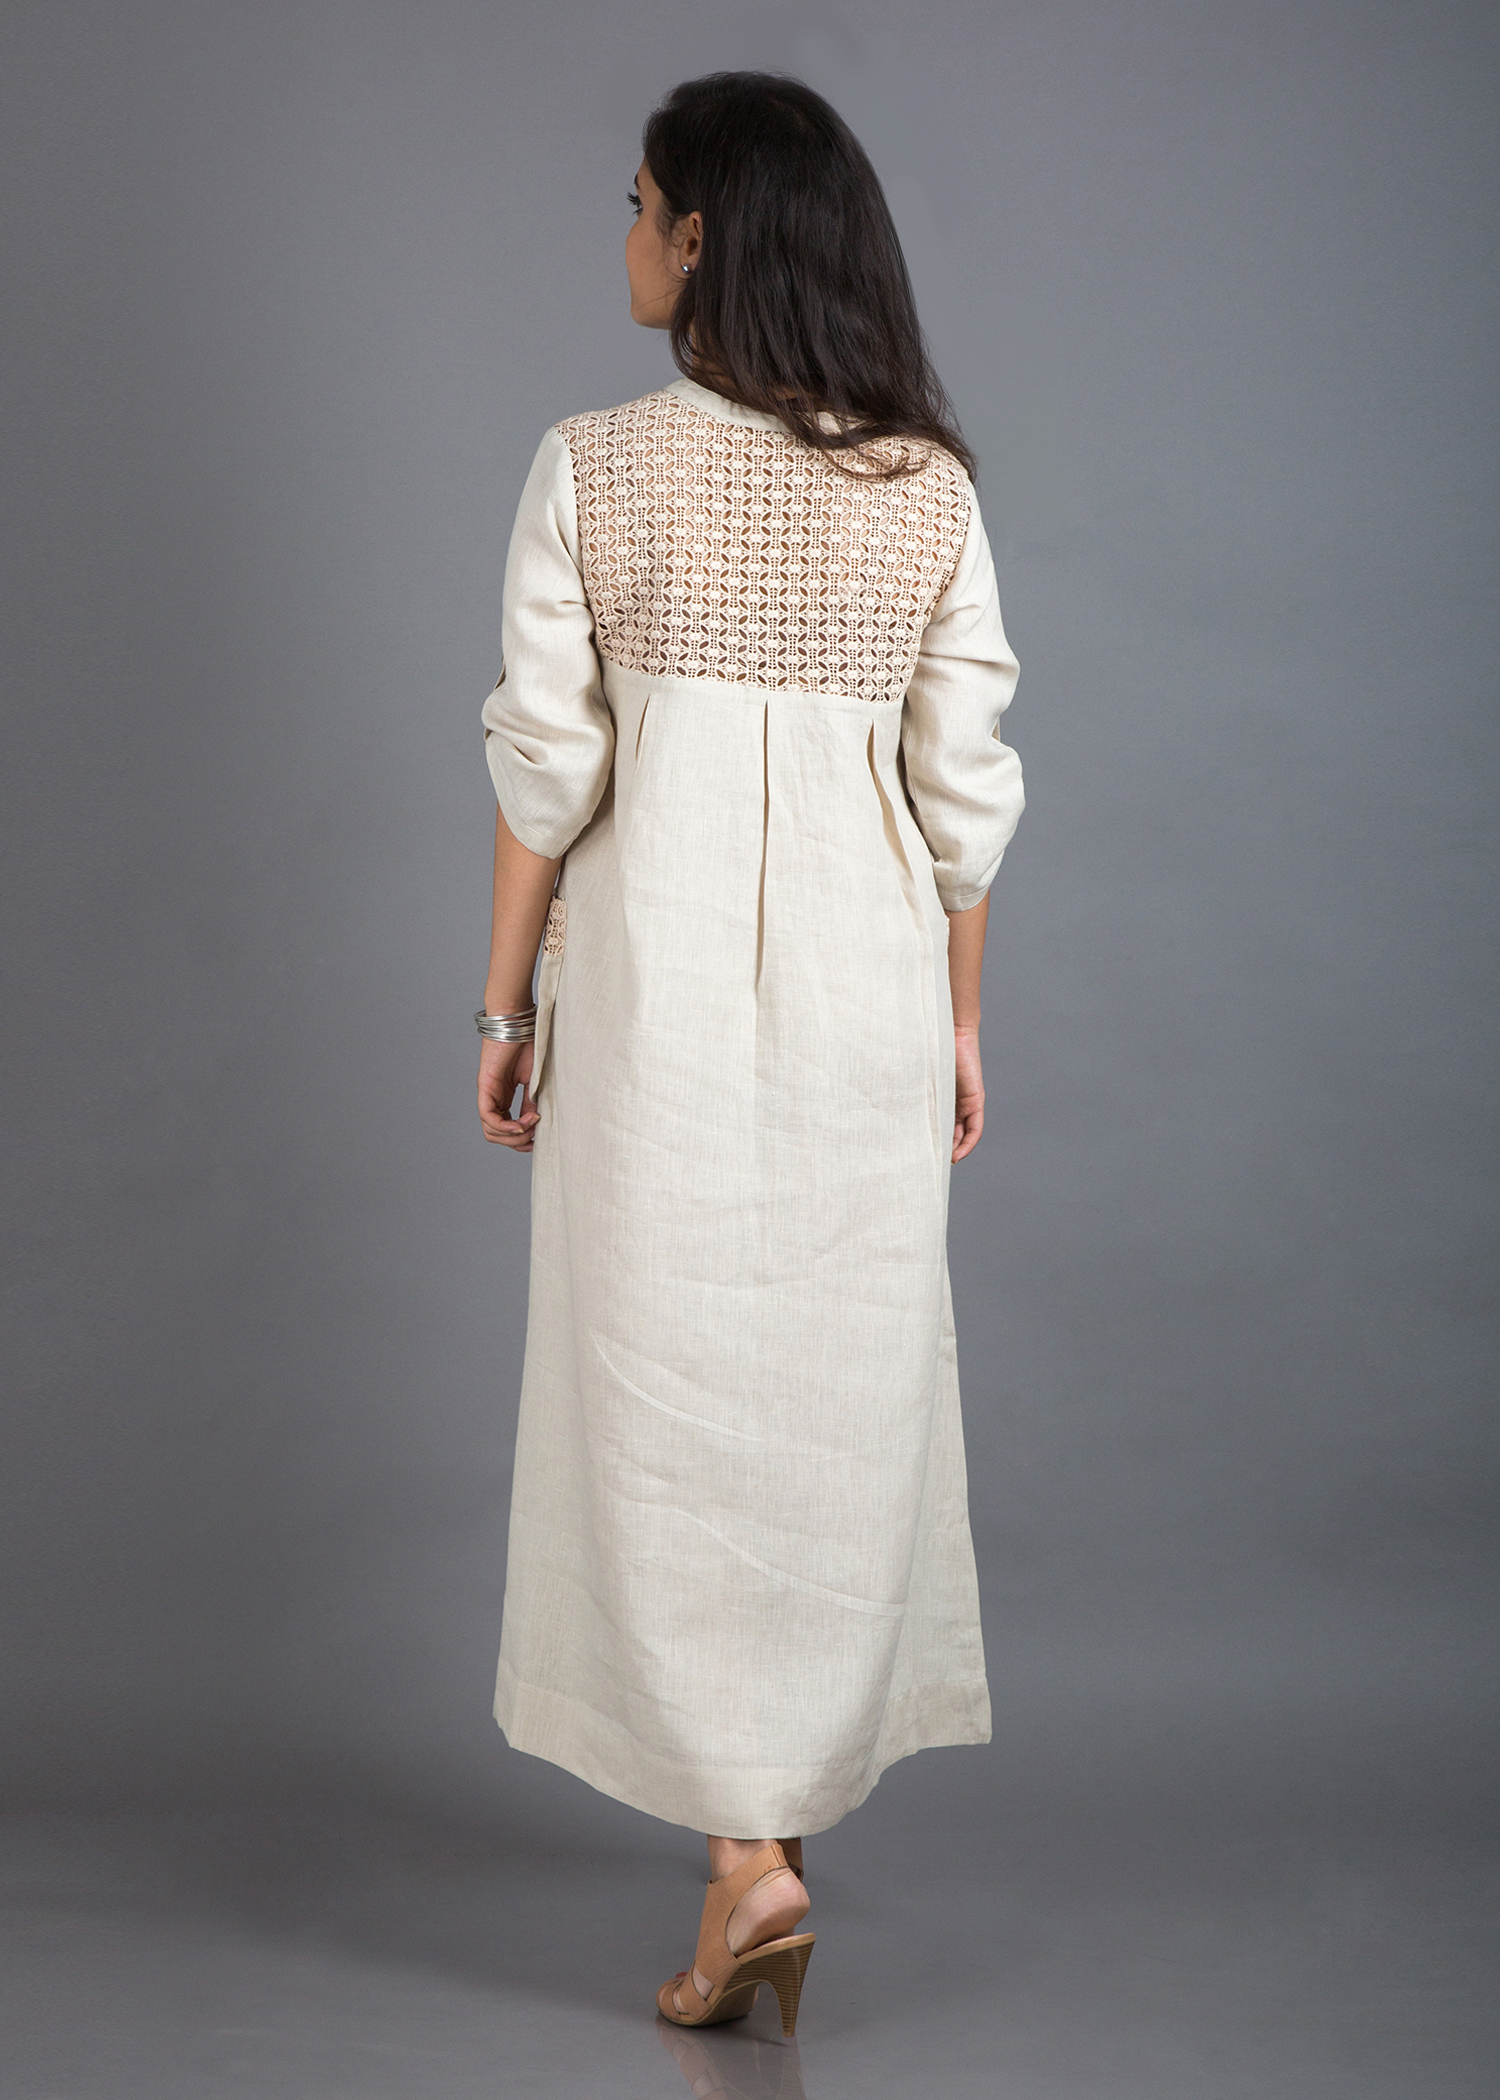 catalog/August-September 2017/beige linen 3.jpg